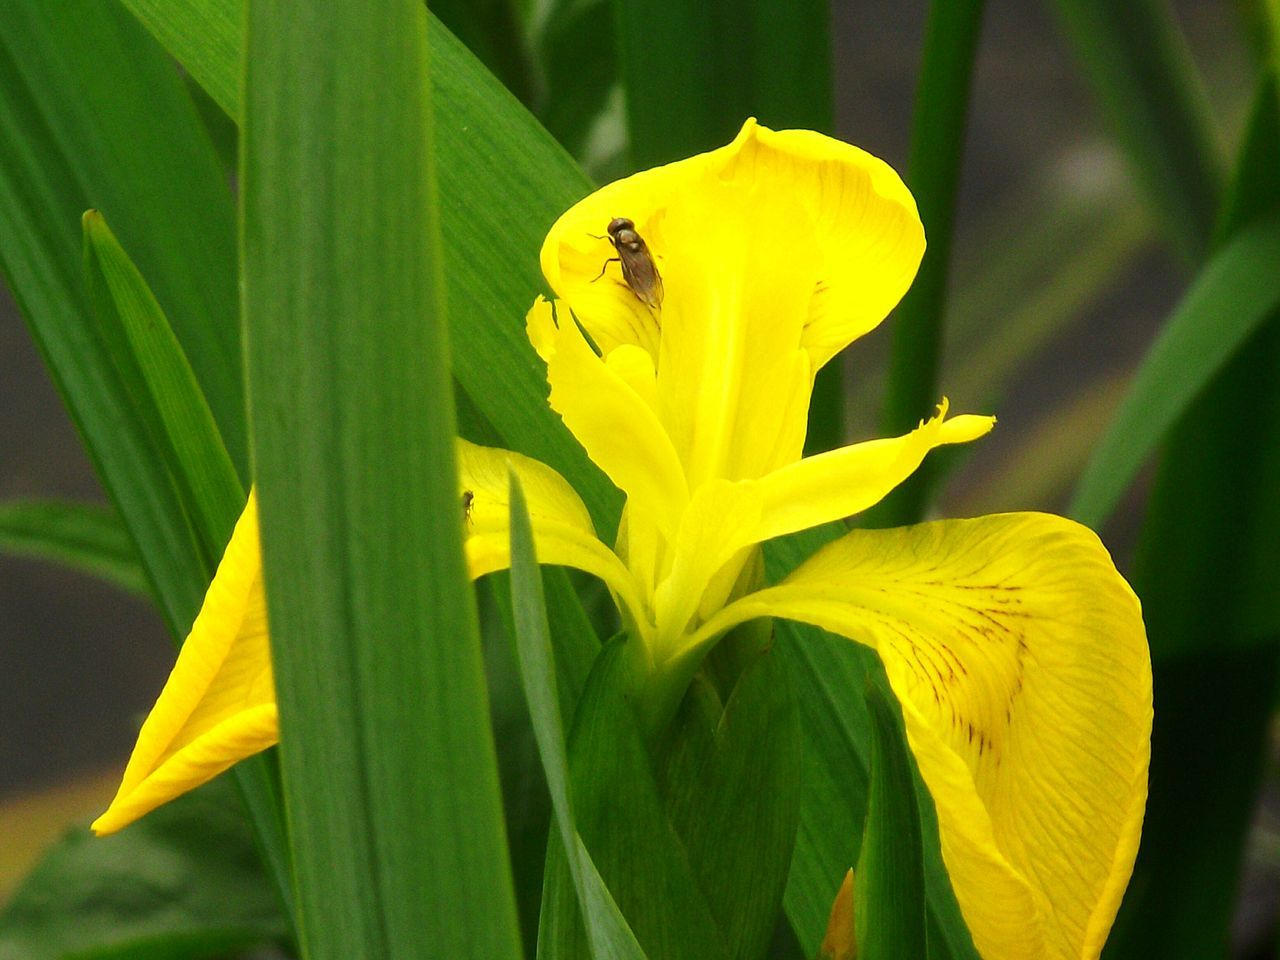 yellow, flower, one animal, fragility, petal, animal themes, nature, insect, outdoors, animals in the wild, day, growth, plant, close-up, leaf, no people, green color, freshness, animal wildlife, flower head, beauty in nature, blooming